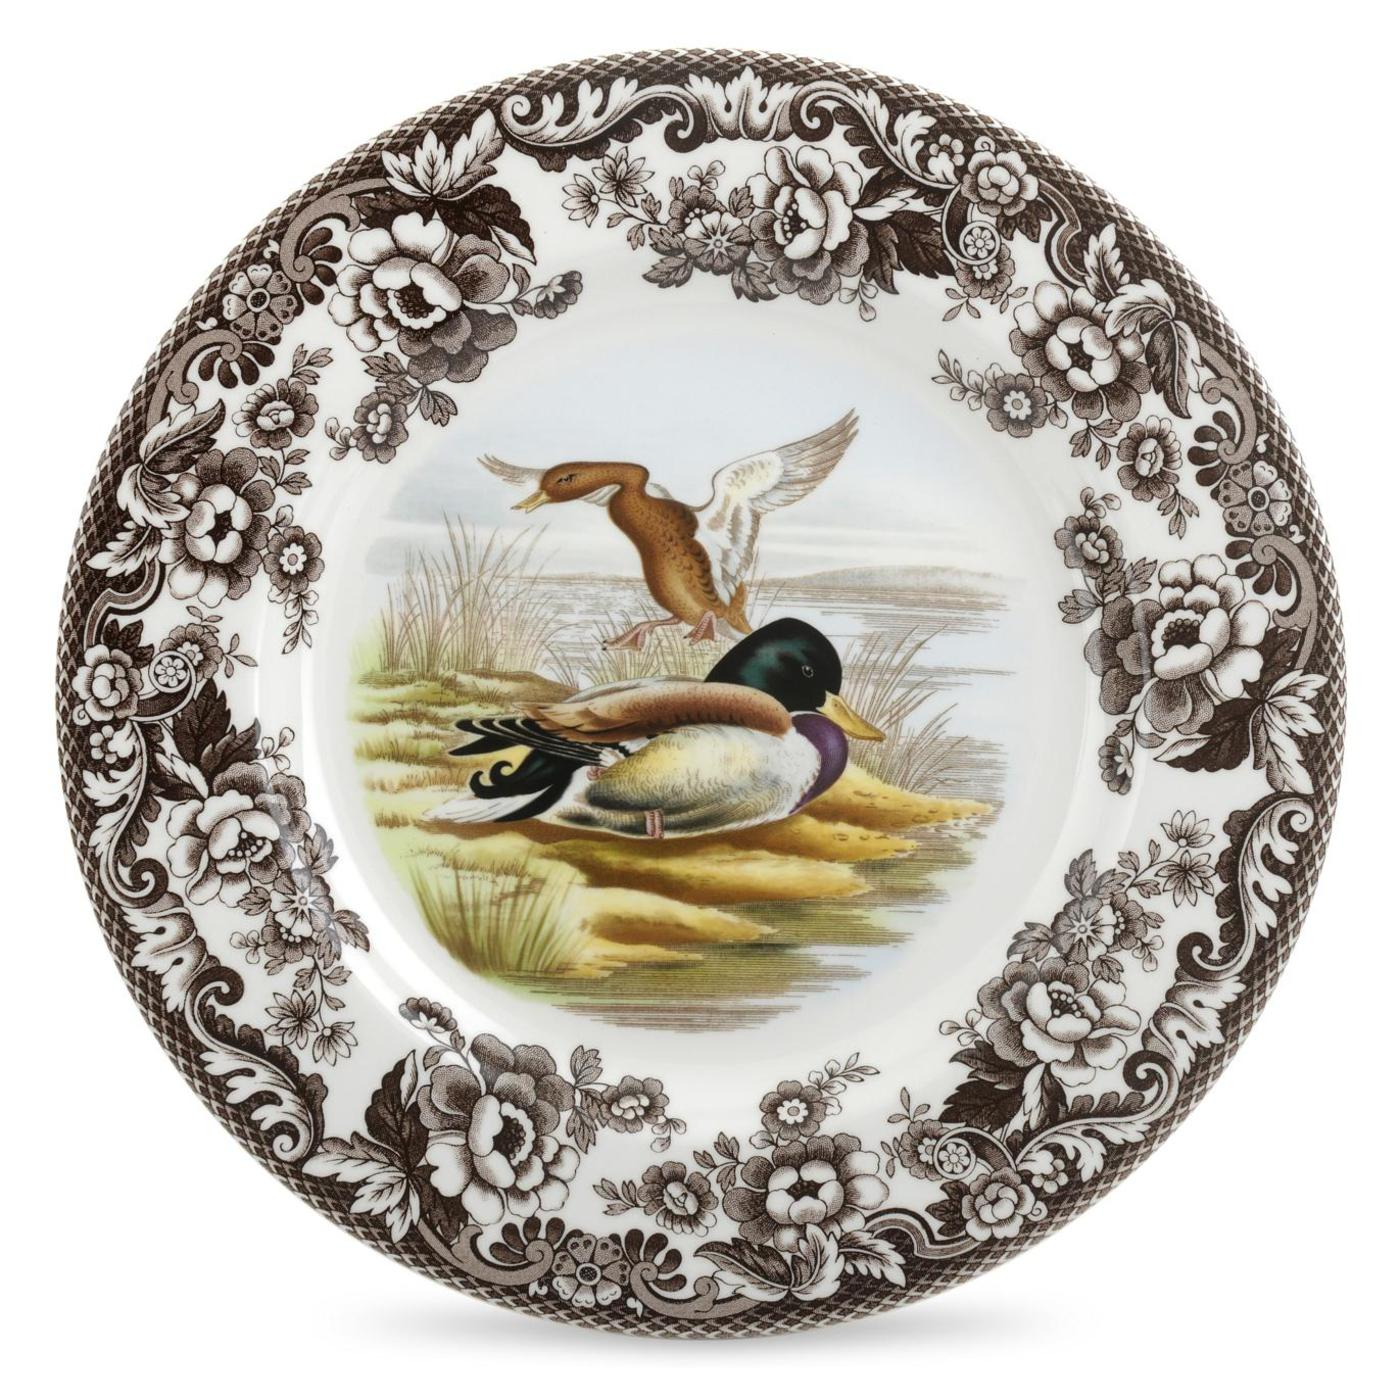 Spode Woodland Dinner Plate 10.5 Inch (Mallard) image number 0